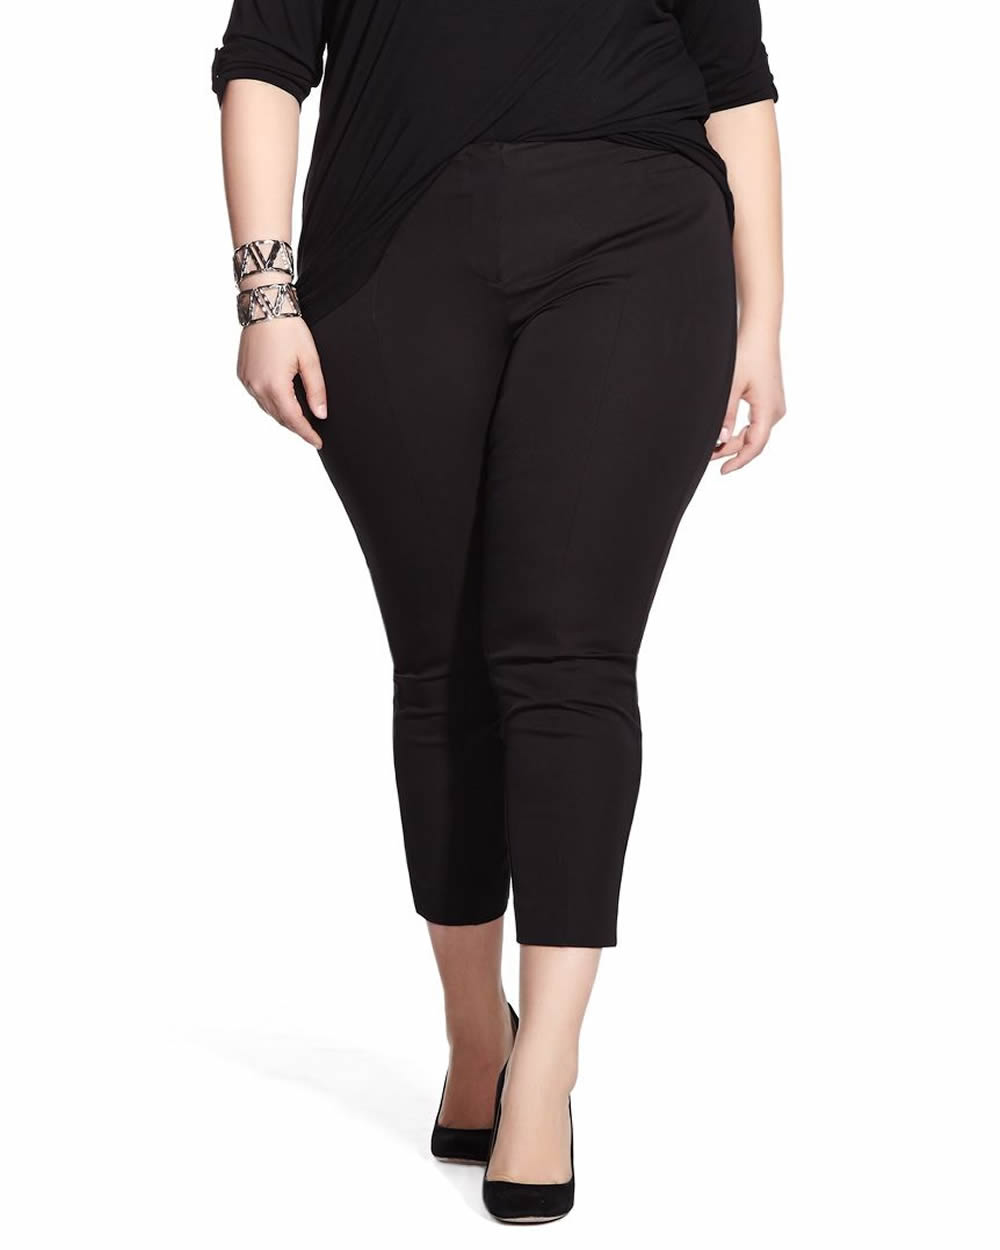 Find great deals on eBay for plus size capri sweatpants. Shop with confidence.